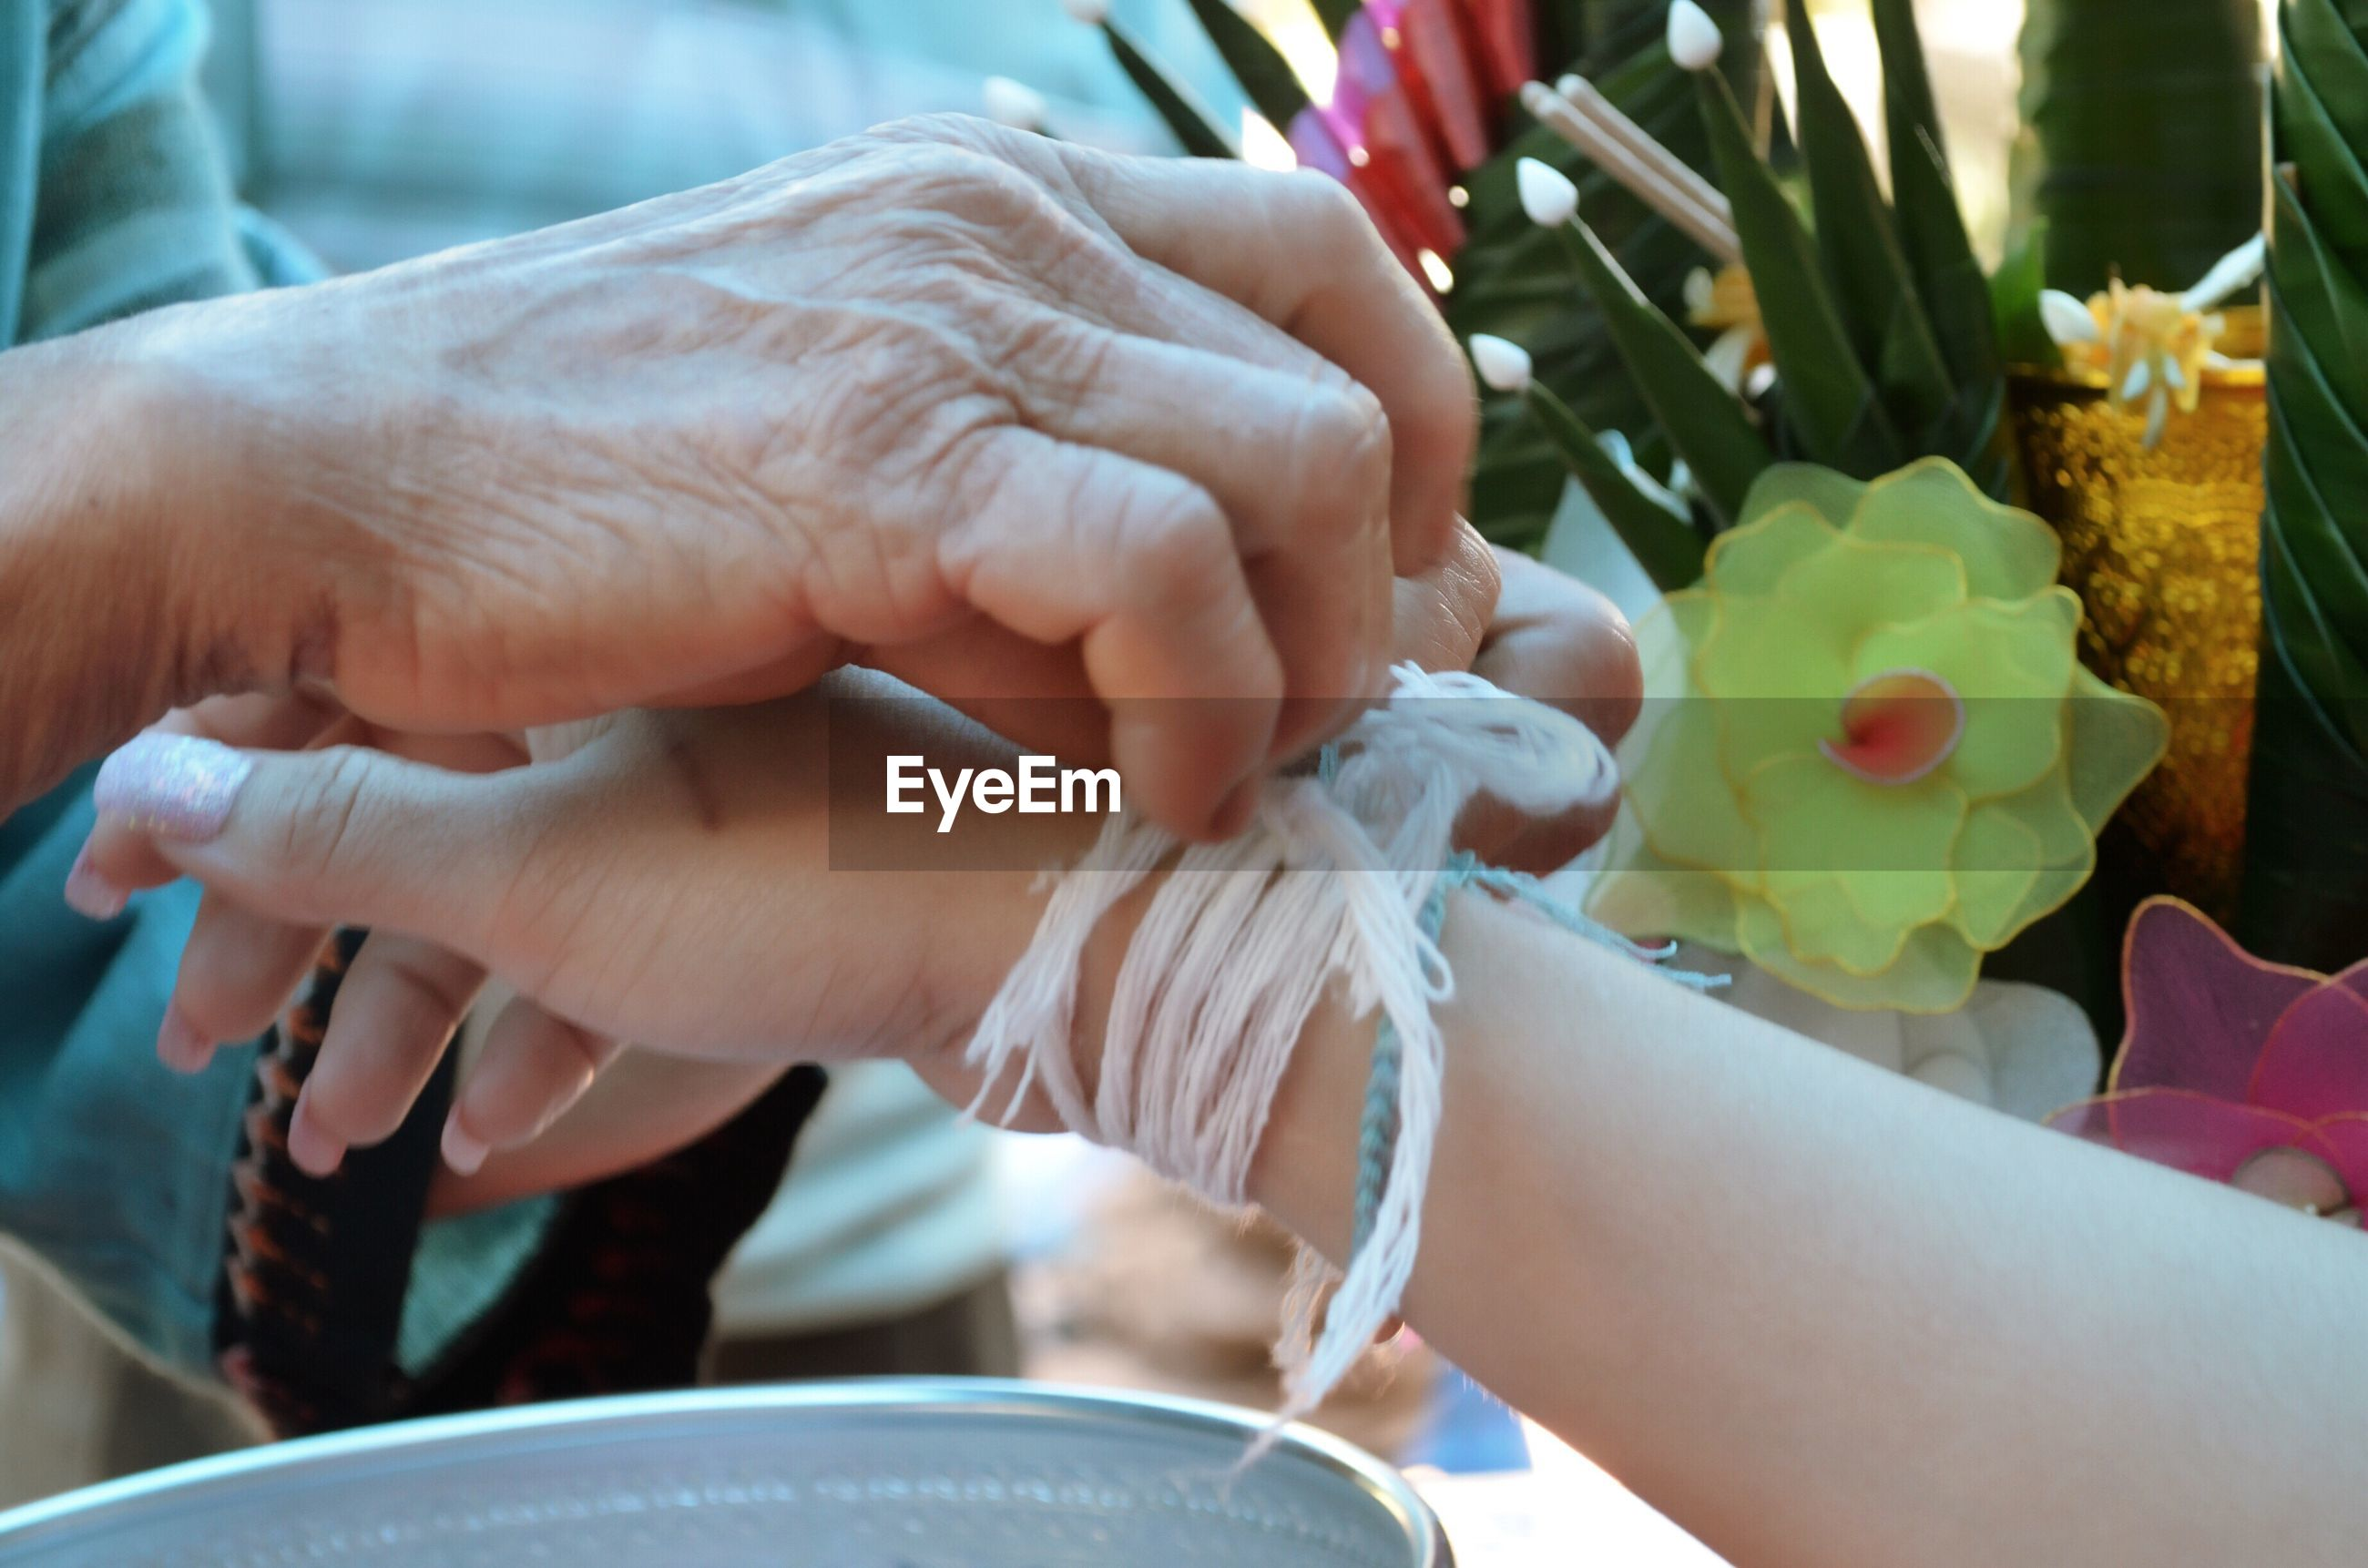 Cropped image of female tying string in woman hand